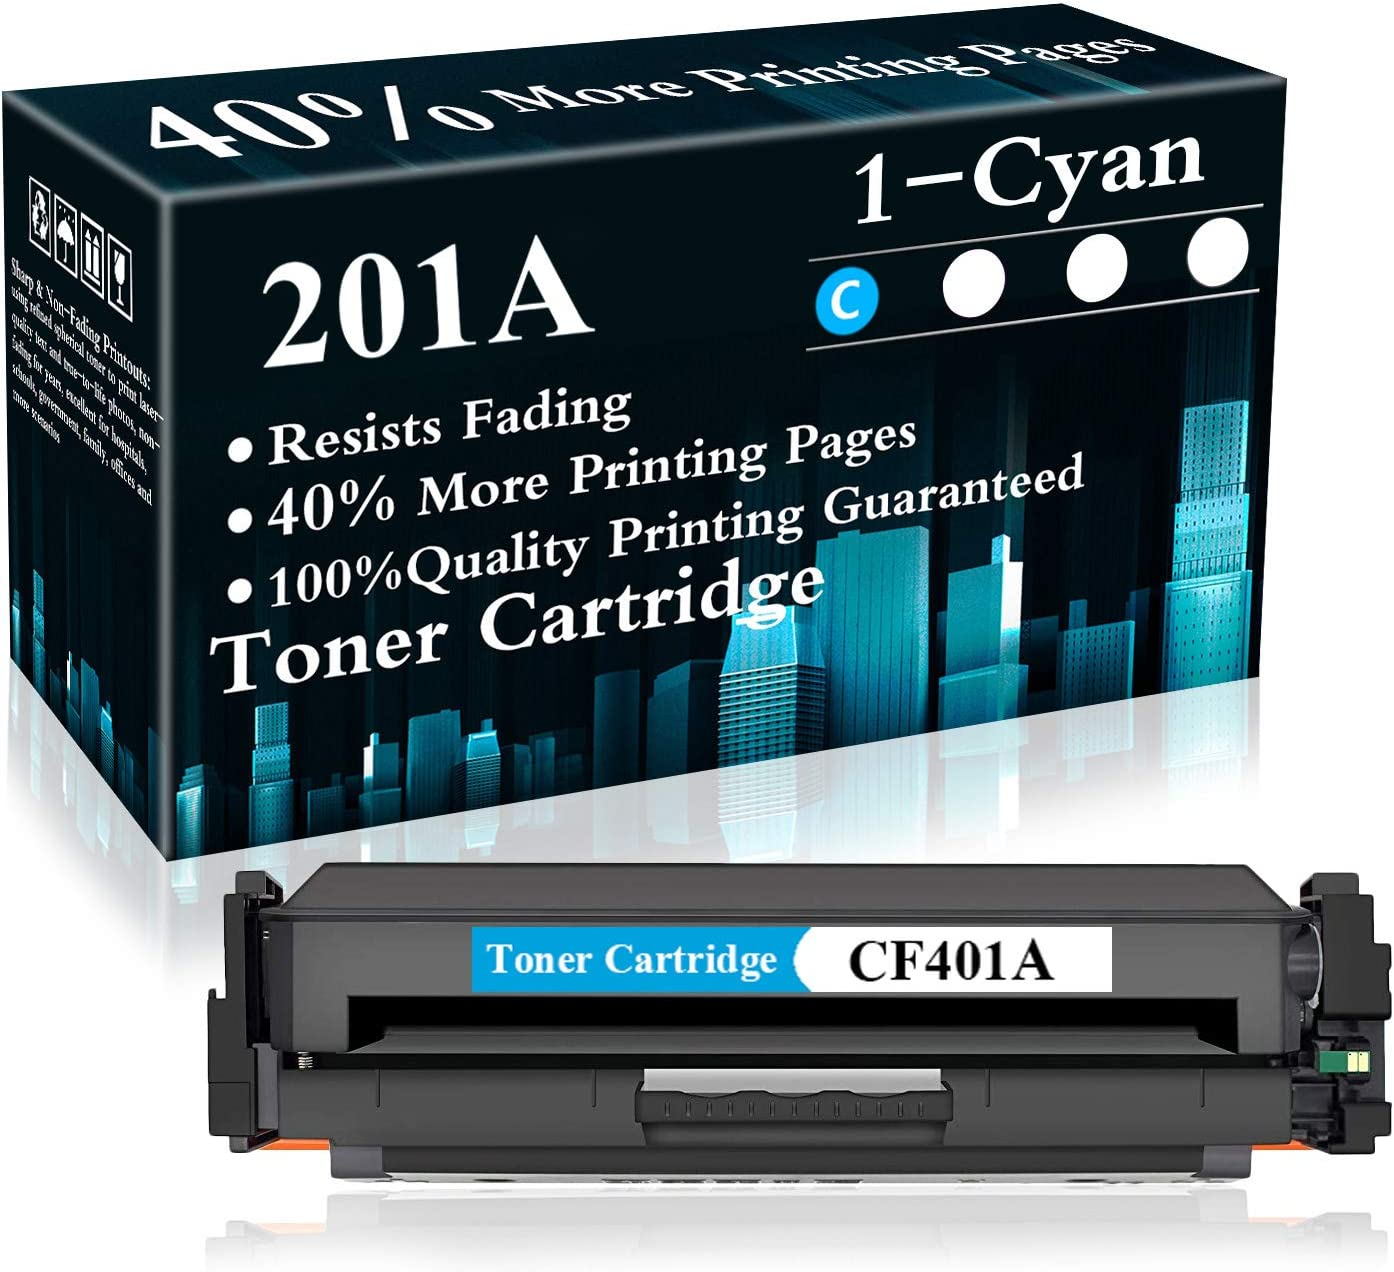 CF401A Toner Cartridge Replacement for HP Color Laserjet Pro MFP M277dw MFP M277n MFP M277c6 M252dw M252n M277 M252 Printer,Sold by TopInk 1 Pack 201A